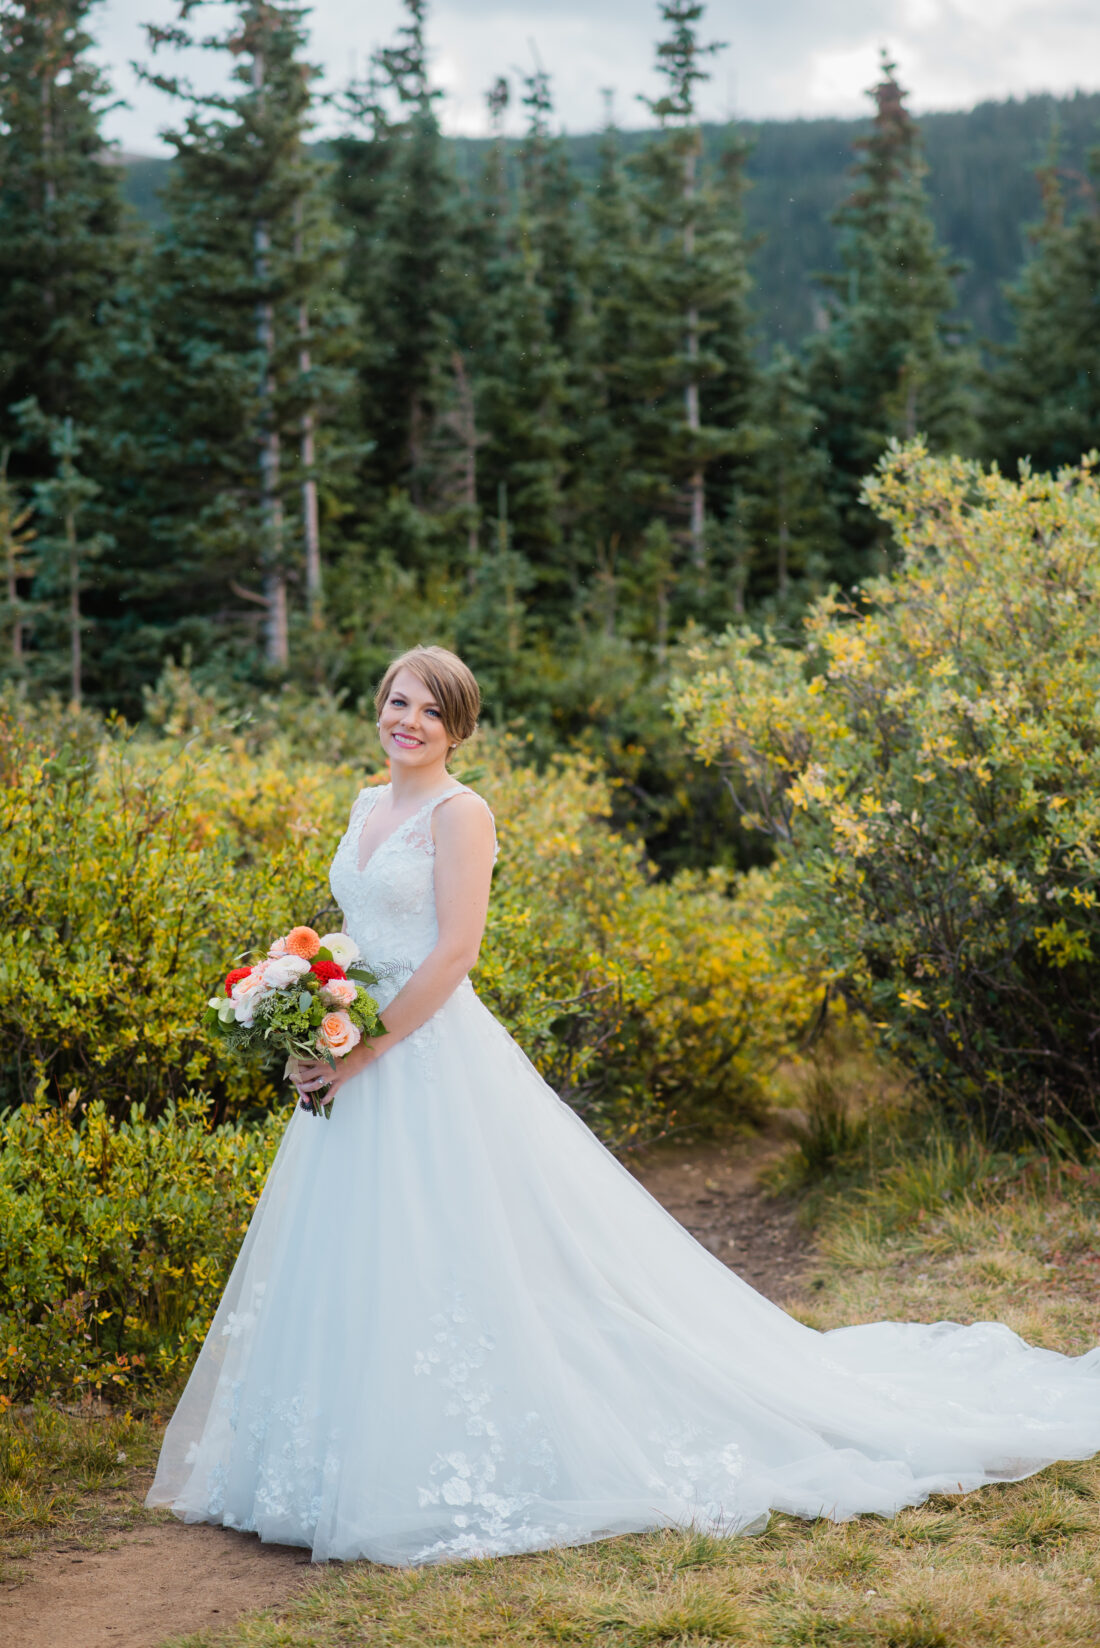 bride in lace wedding gown by the lake